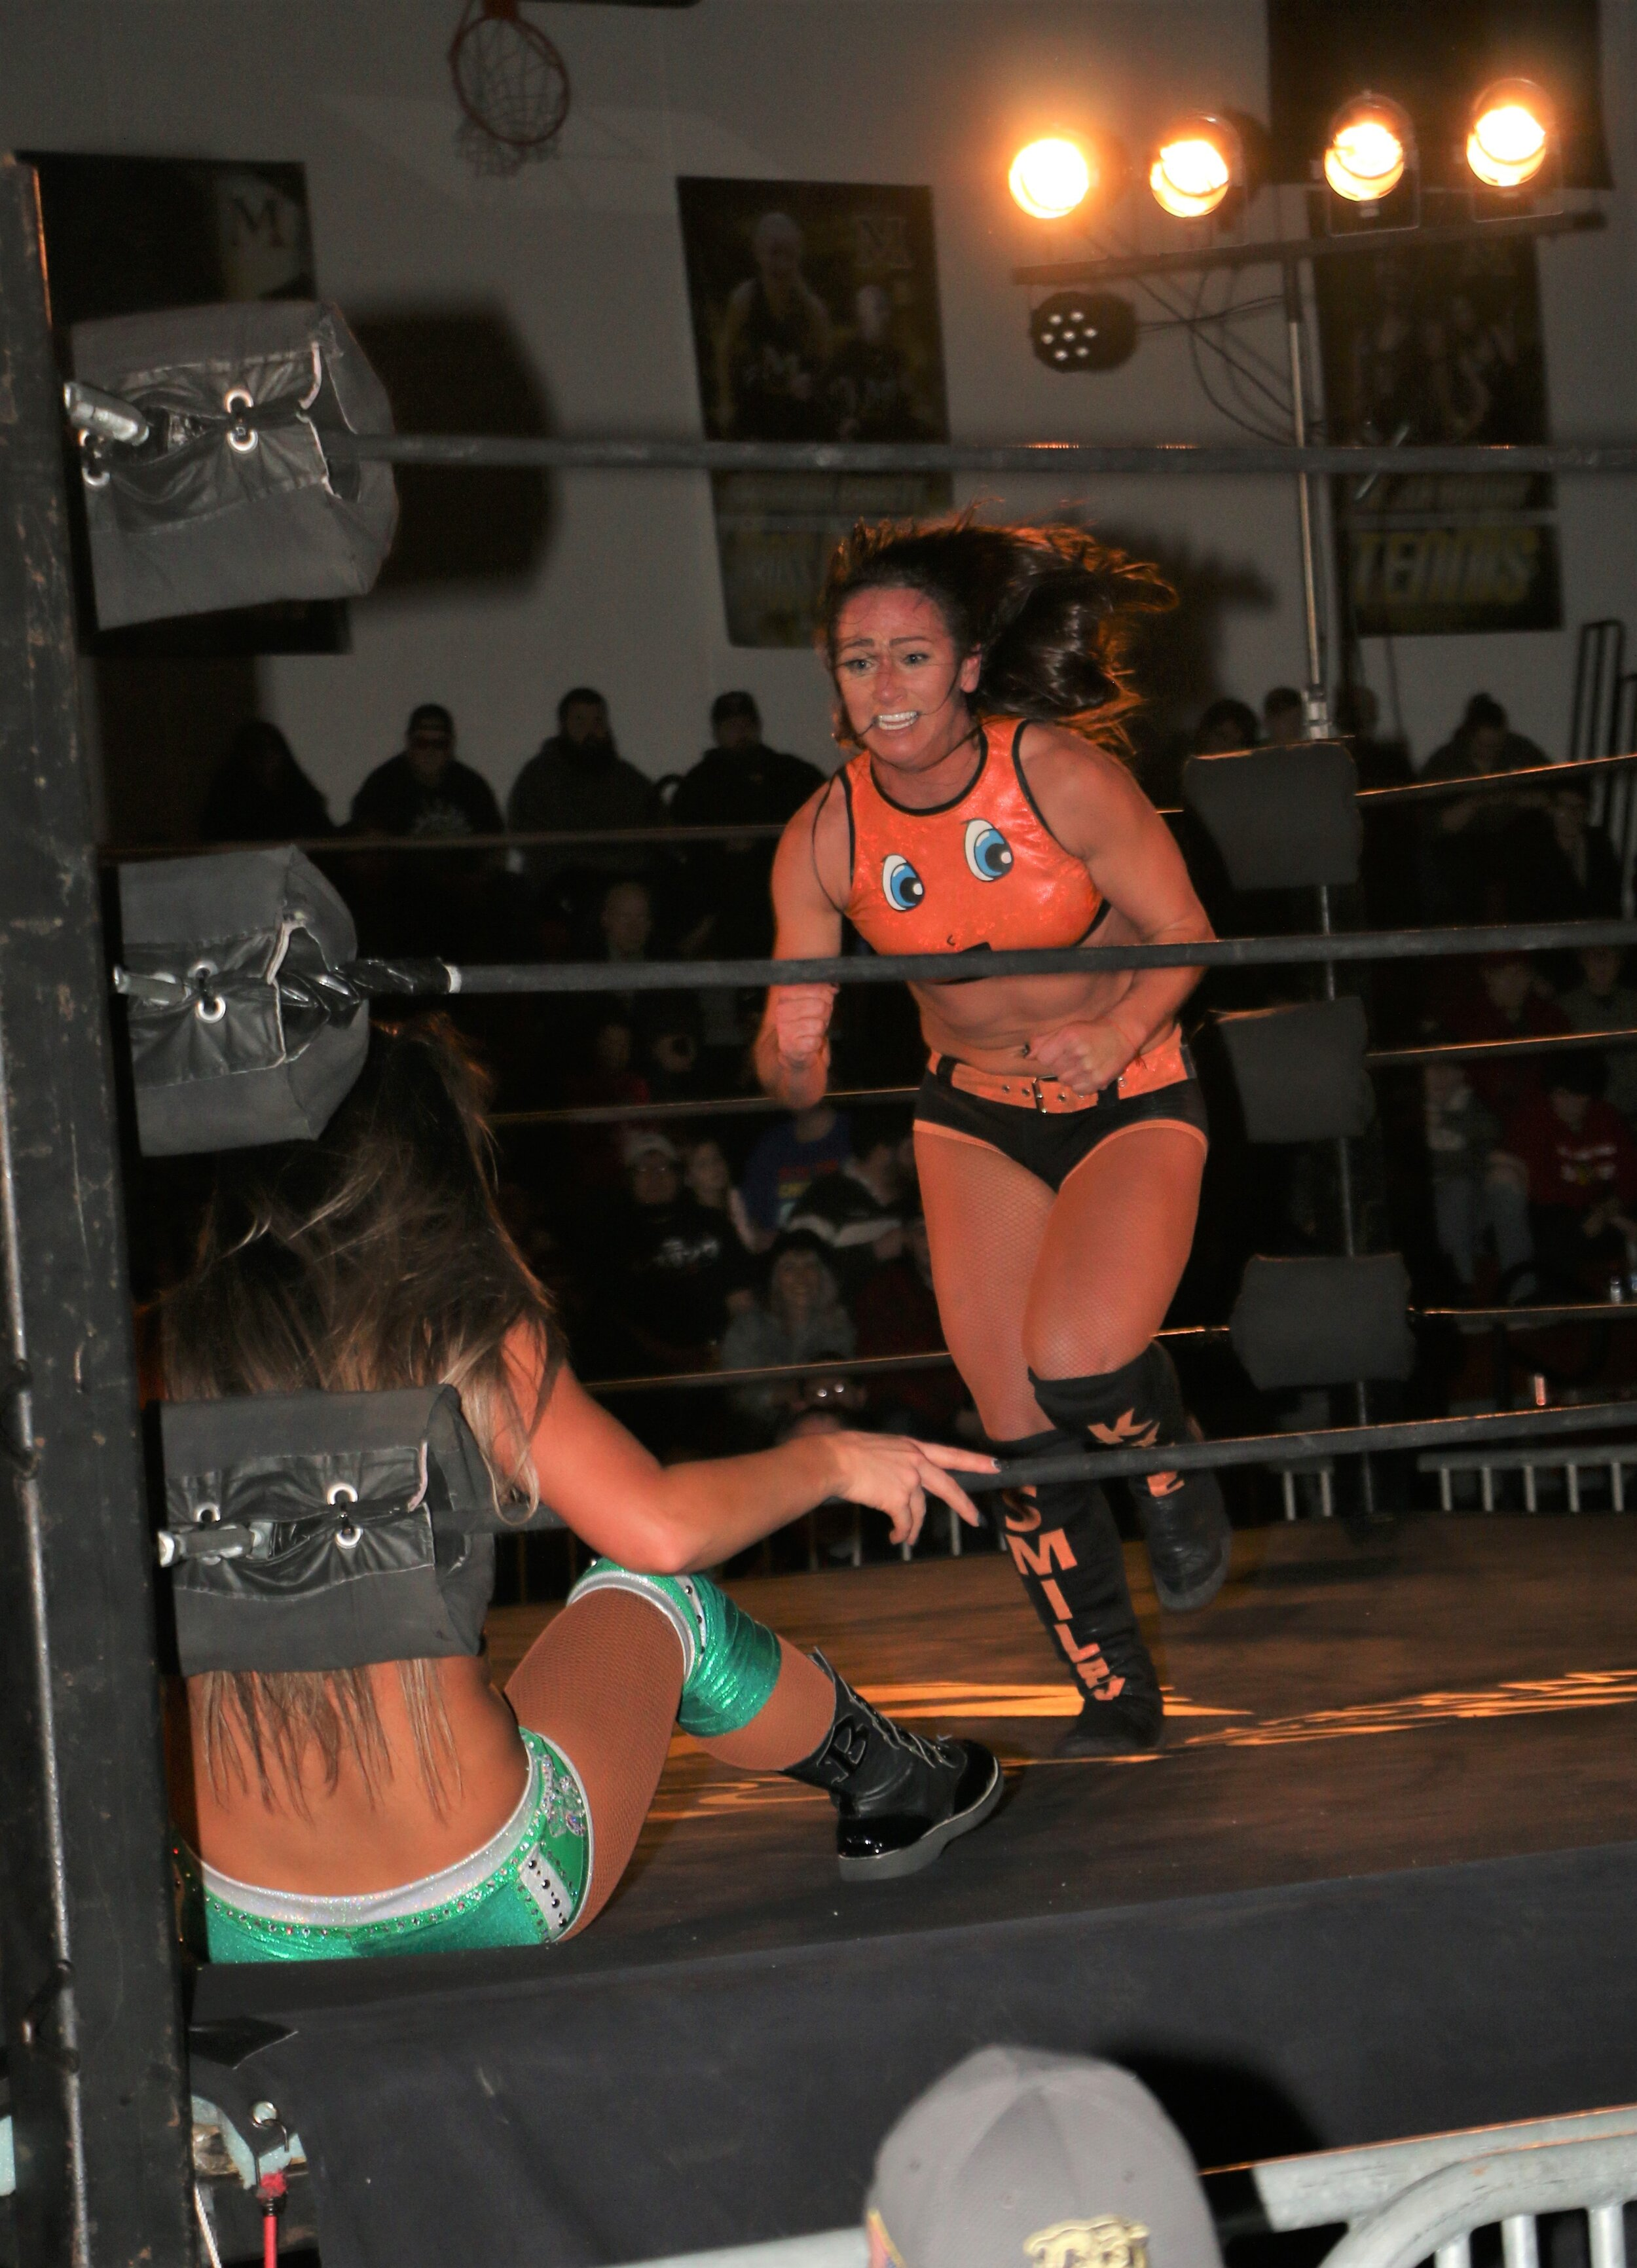 Kylie Rae charges toward Britt Baker at Warrior Wrestling 4 on March 15. Kylie returned to the ring after a three-month absence last weekend.  (Photo by Mike Pankow)